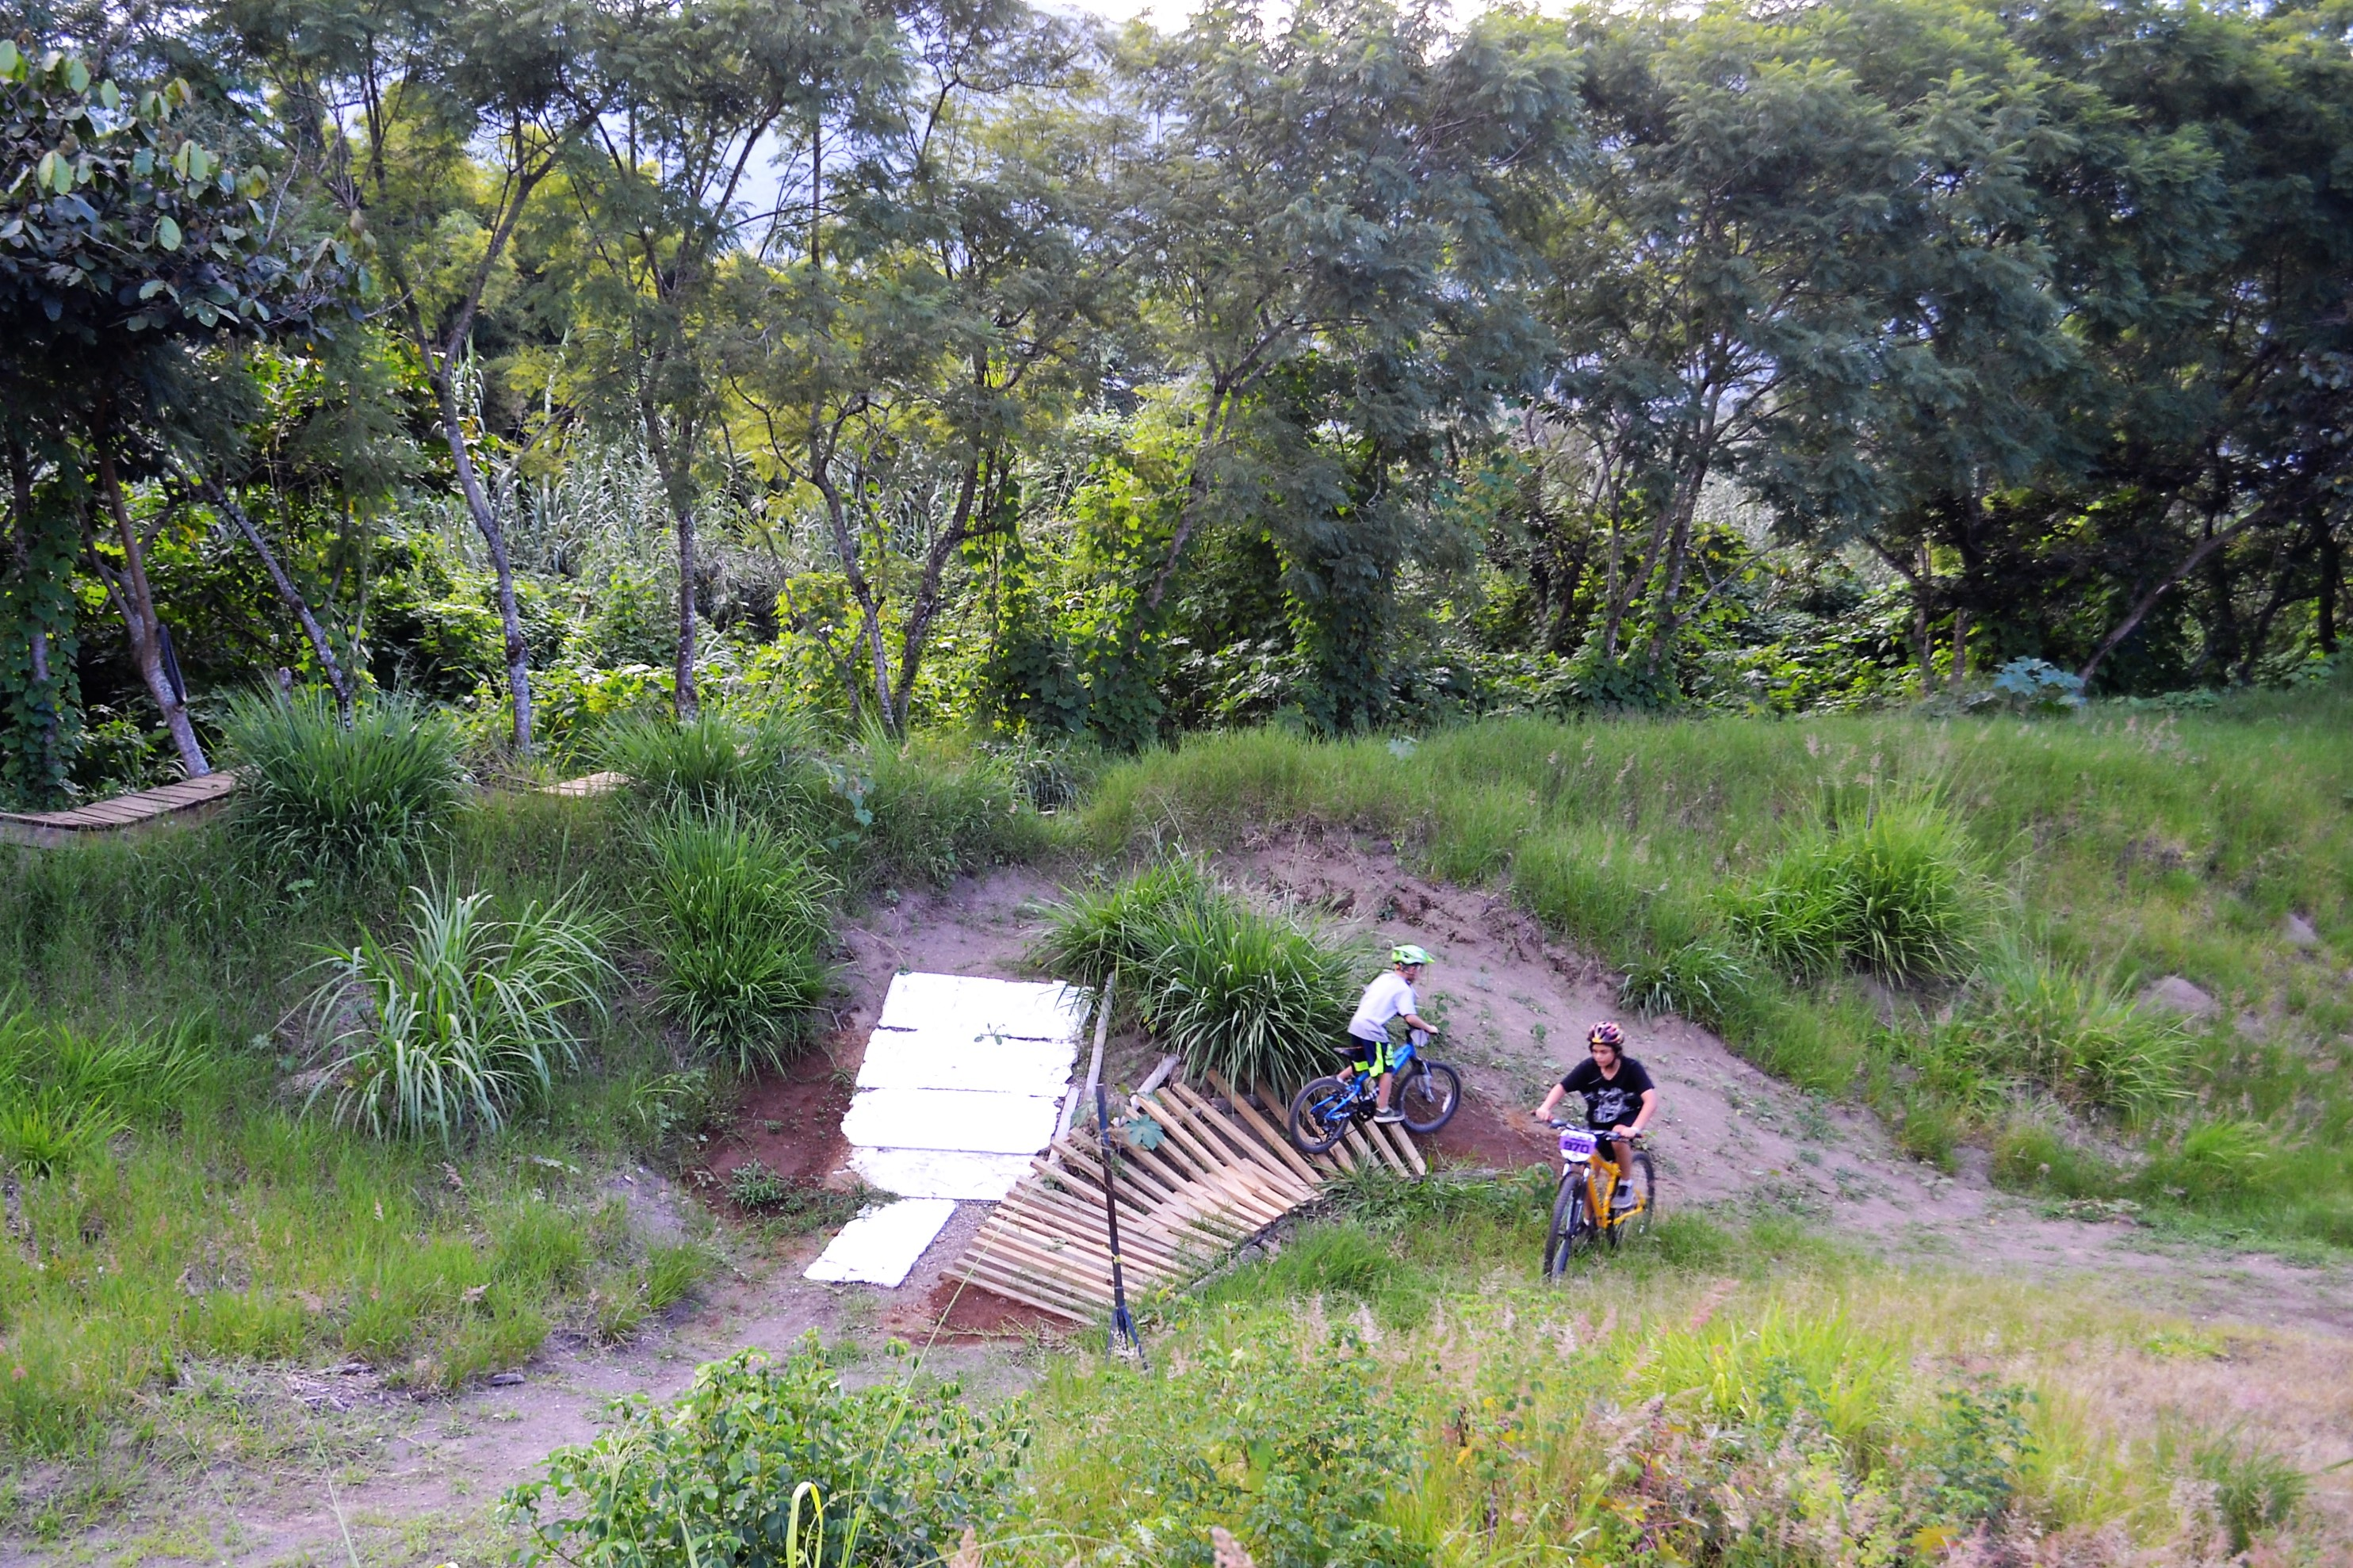 bike ramps, bike jumps, bike trails, find them all on a pump track